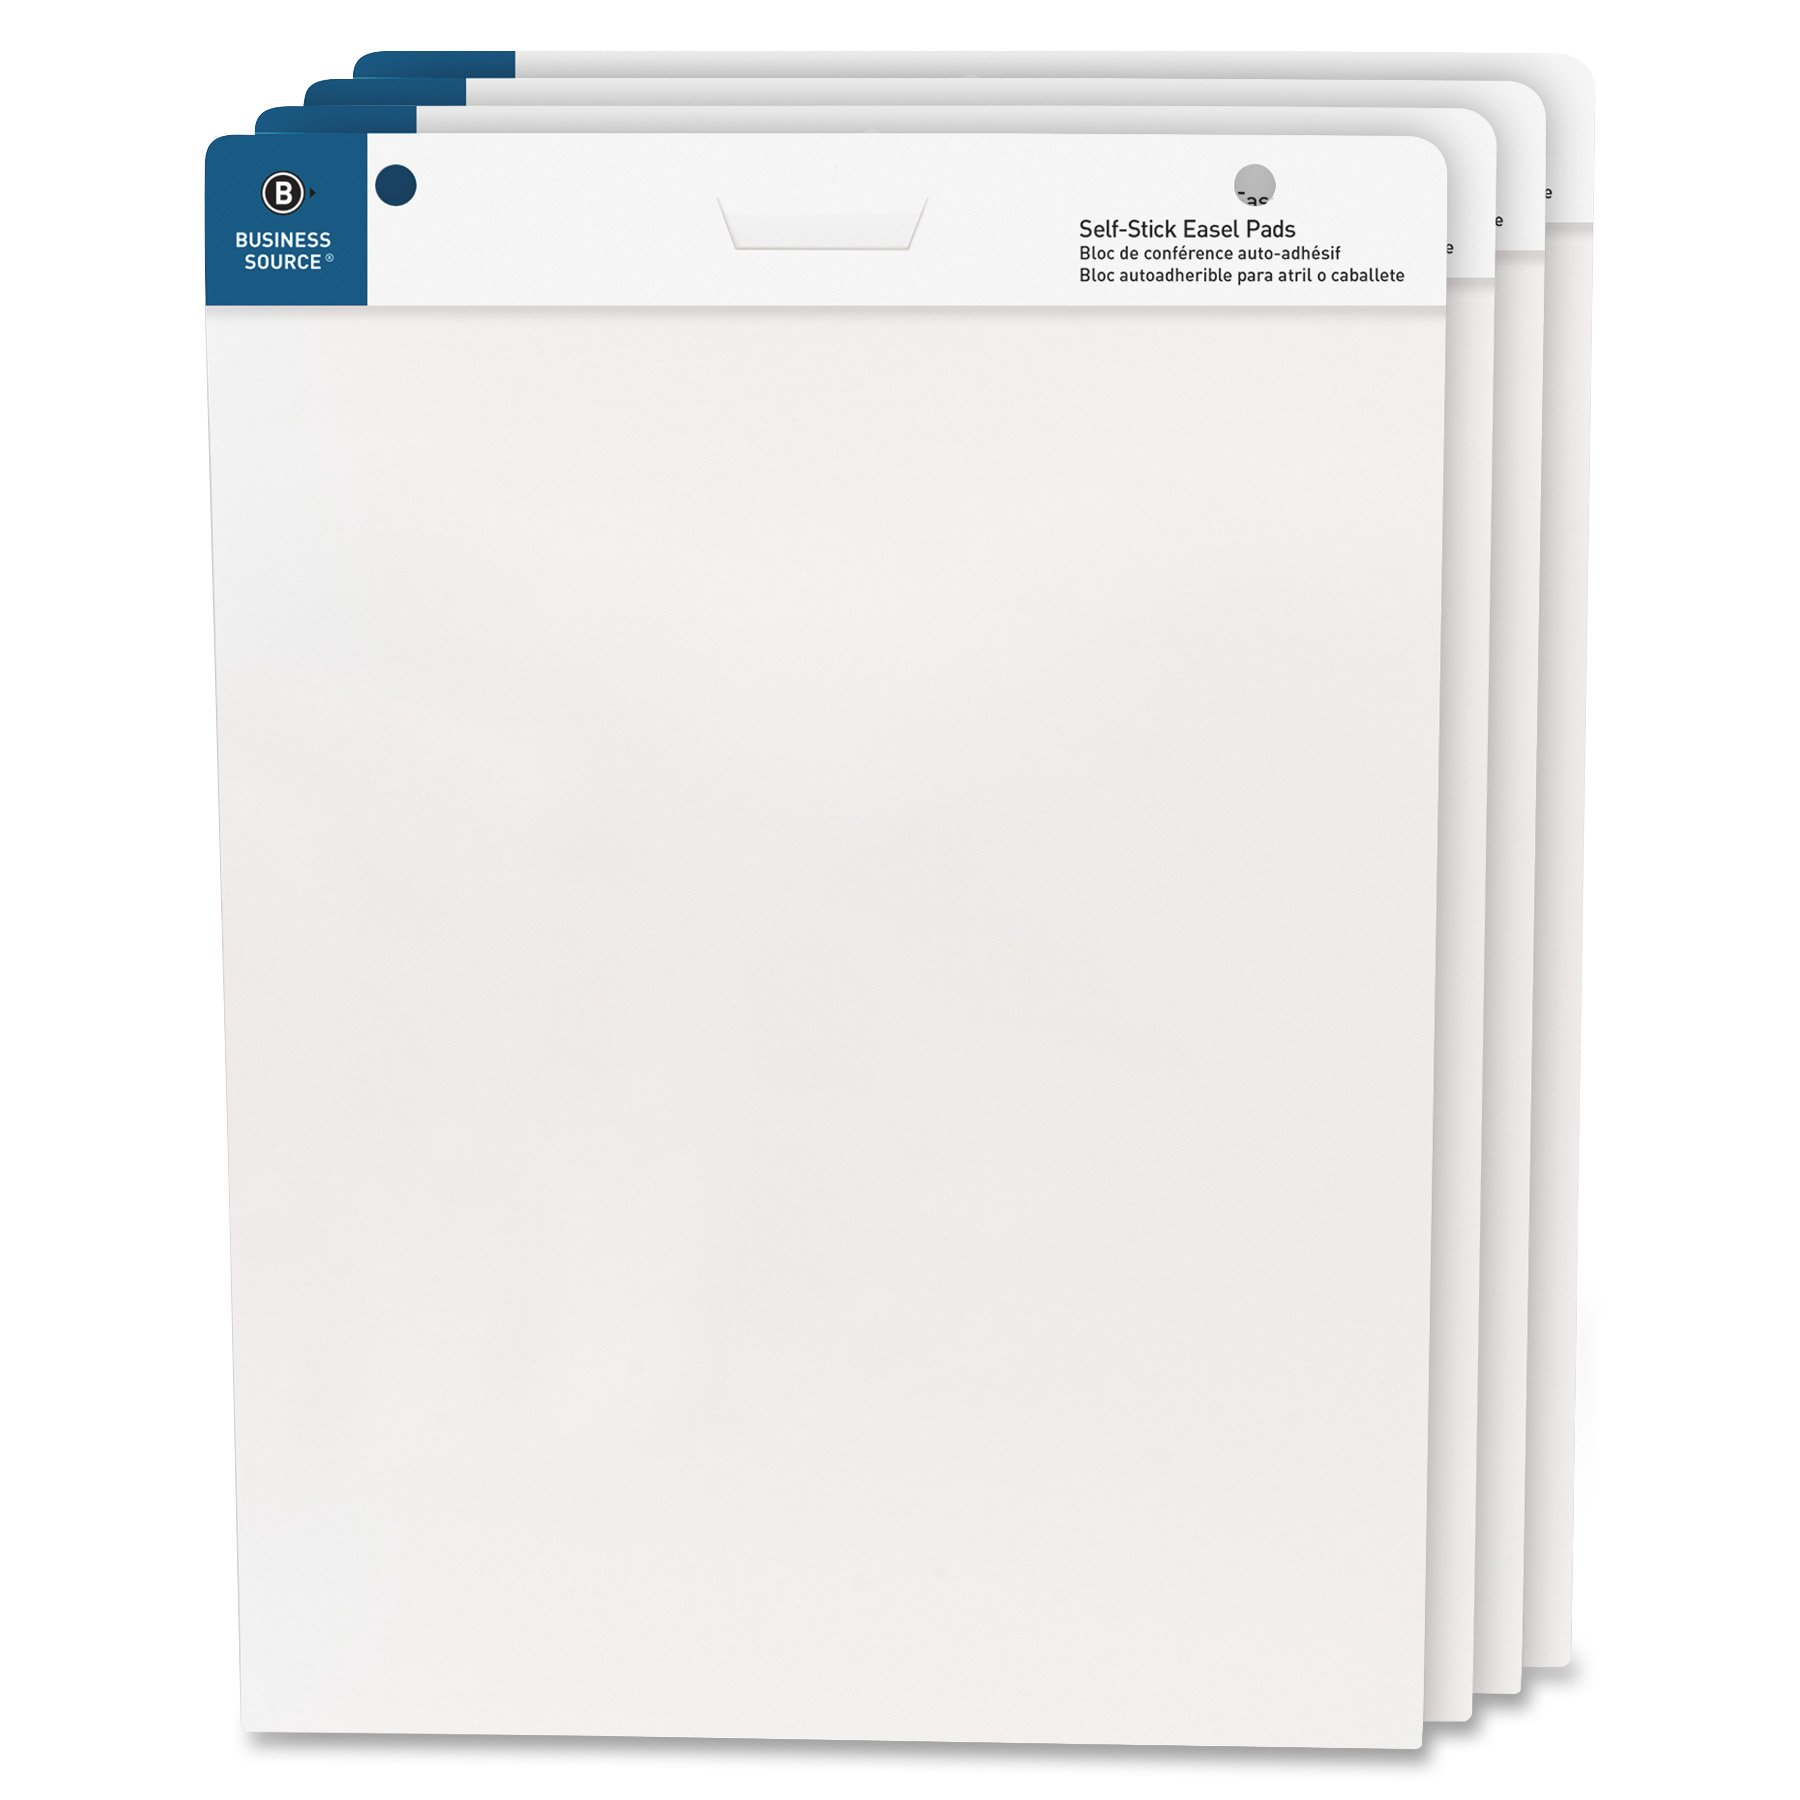 Business Source 25''x30'' Self-Stick Easel Pads, 4/Pack (38592) by Business Source